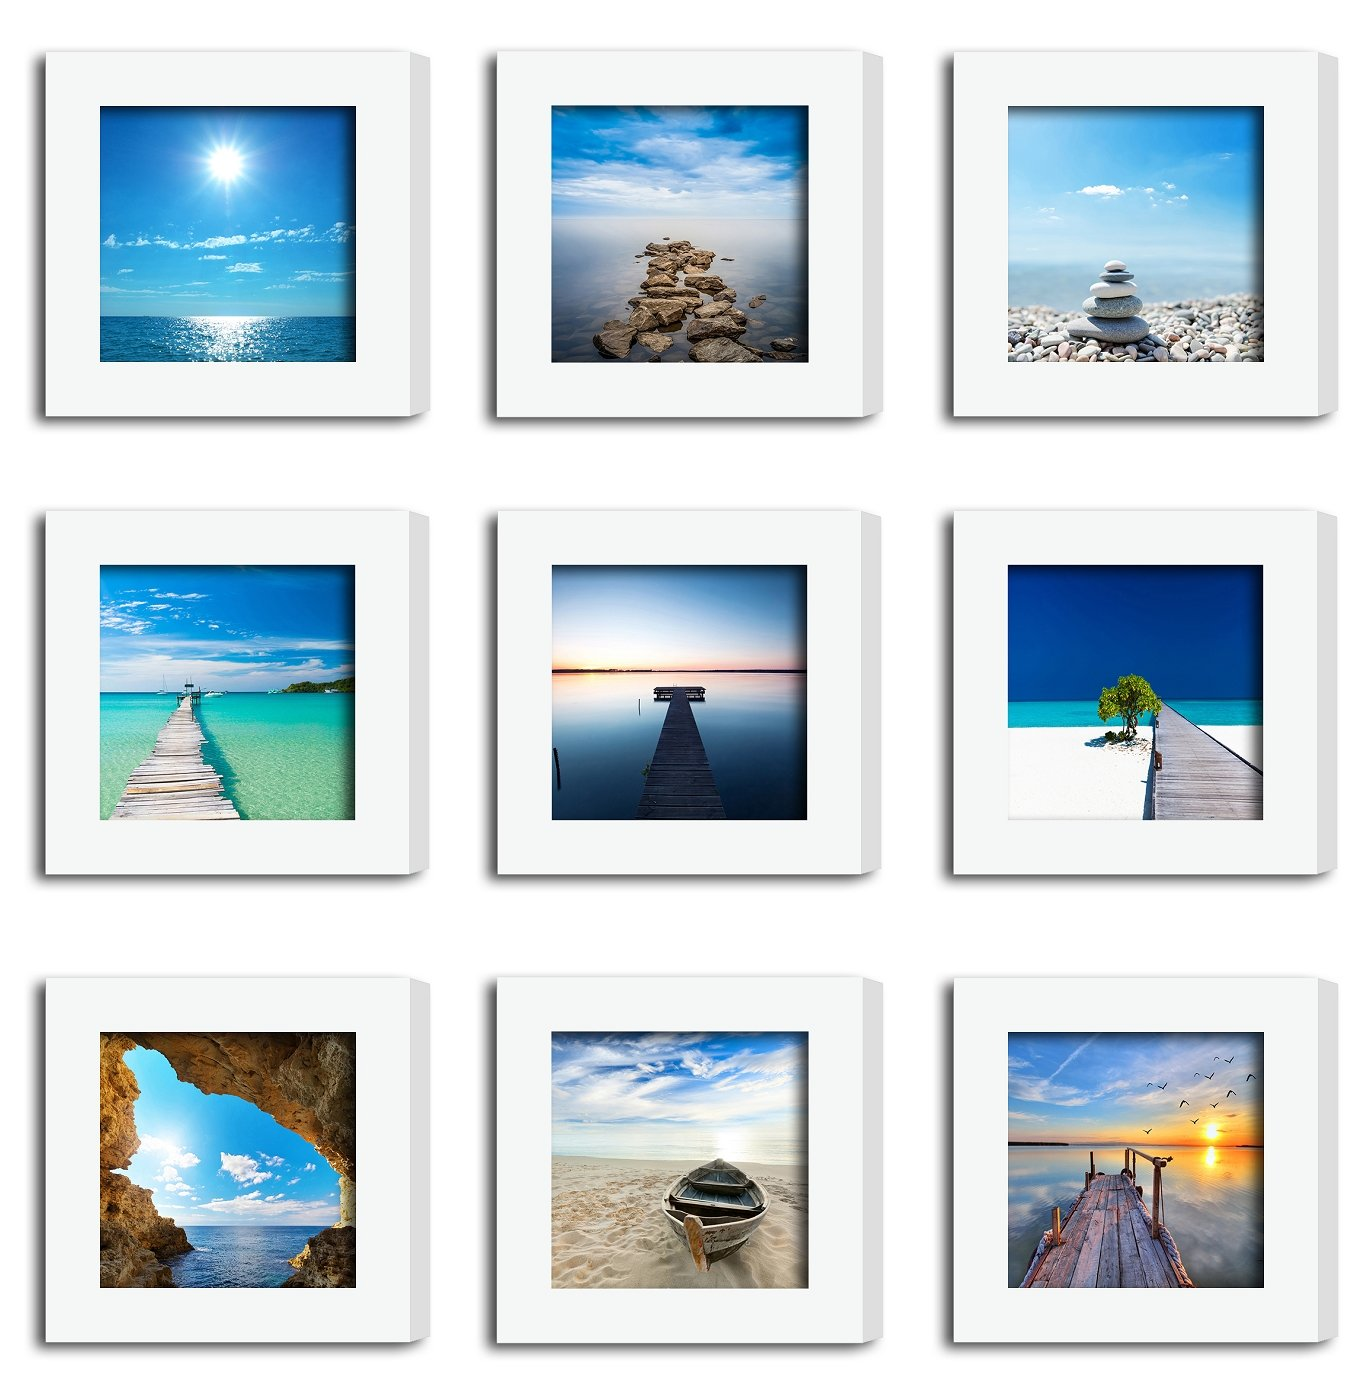 9Pcs 4x4 Real Glass Wood Frame White Square , Fit Family Image Pictures Photo (Window 3.6x3.6 inch) , Desktop Stand On Wall Family Combine Sea Jetty Beach Motivational Decoration (10 Set Pictures) by XUFLY